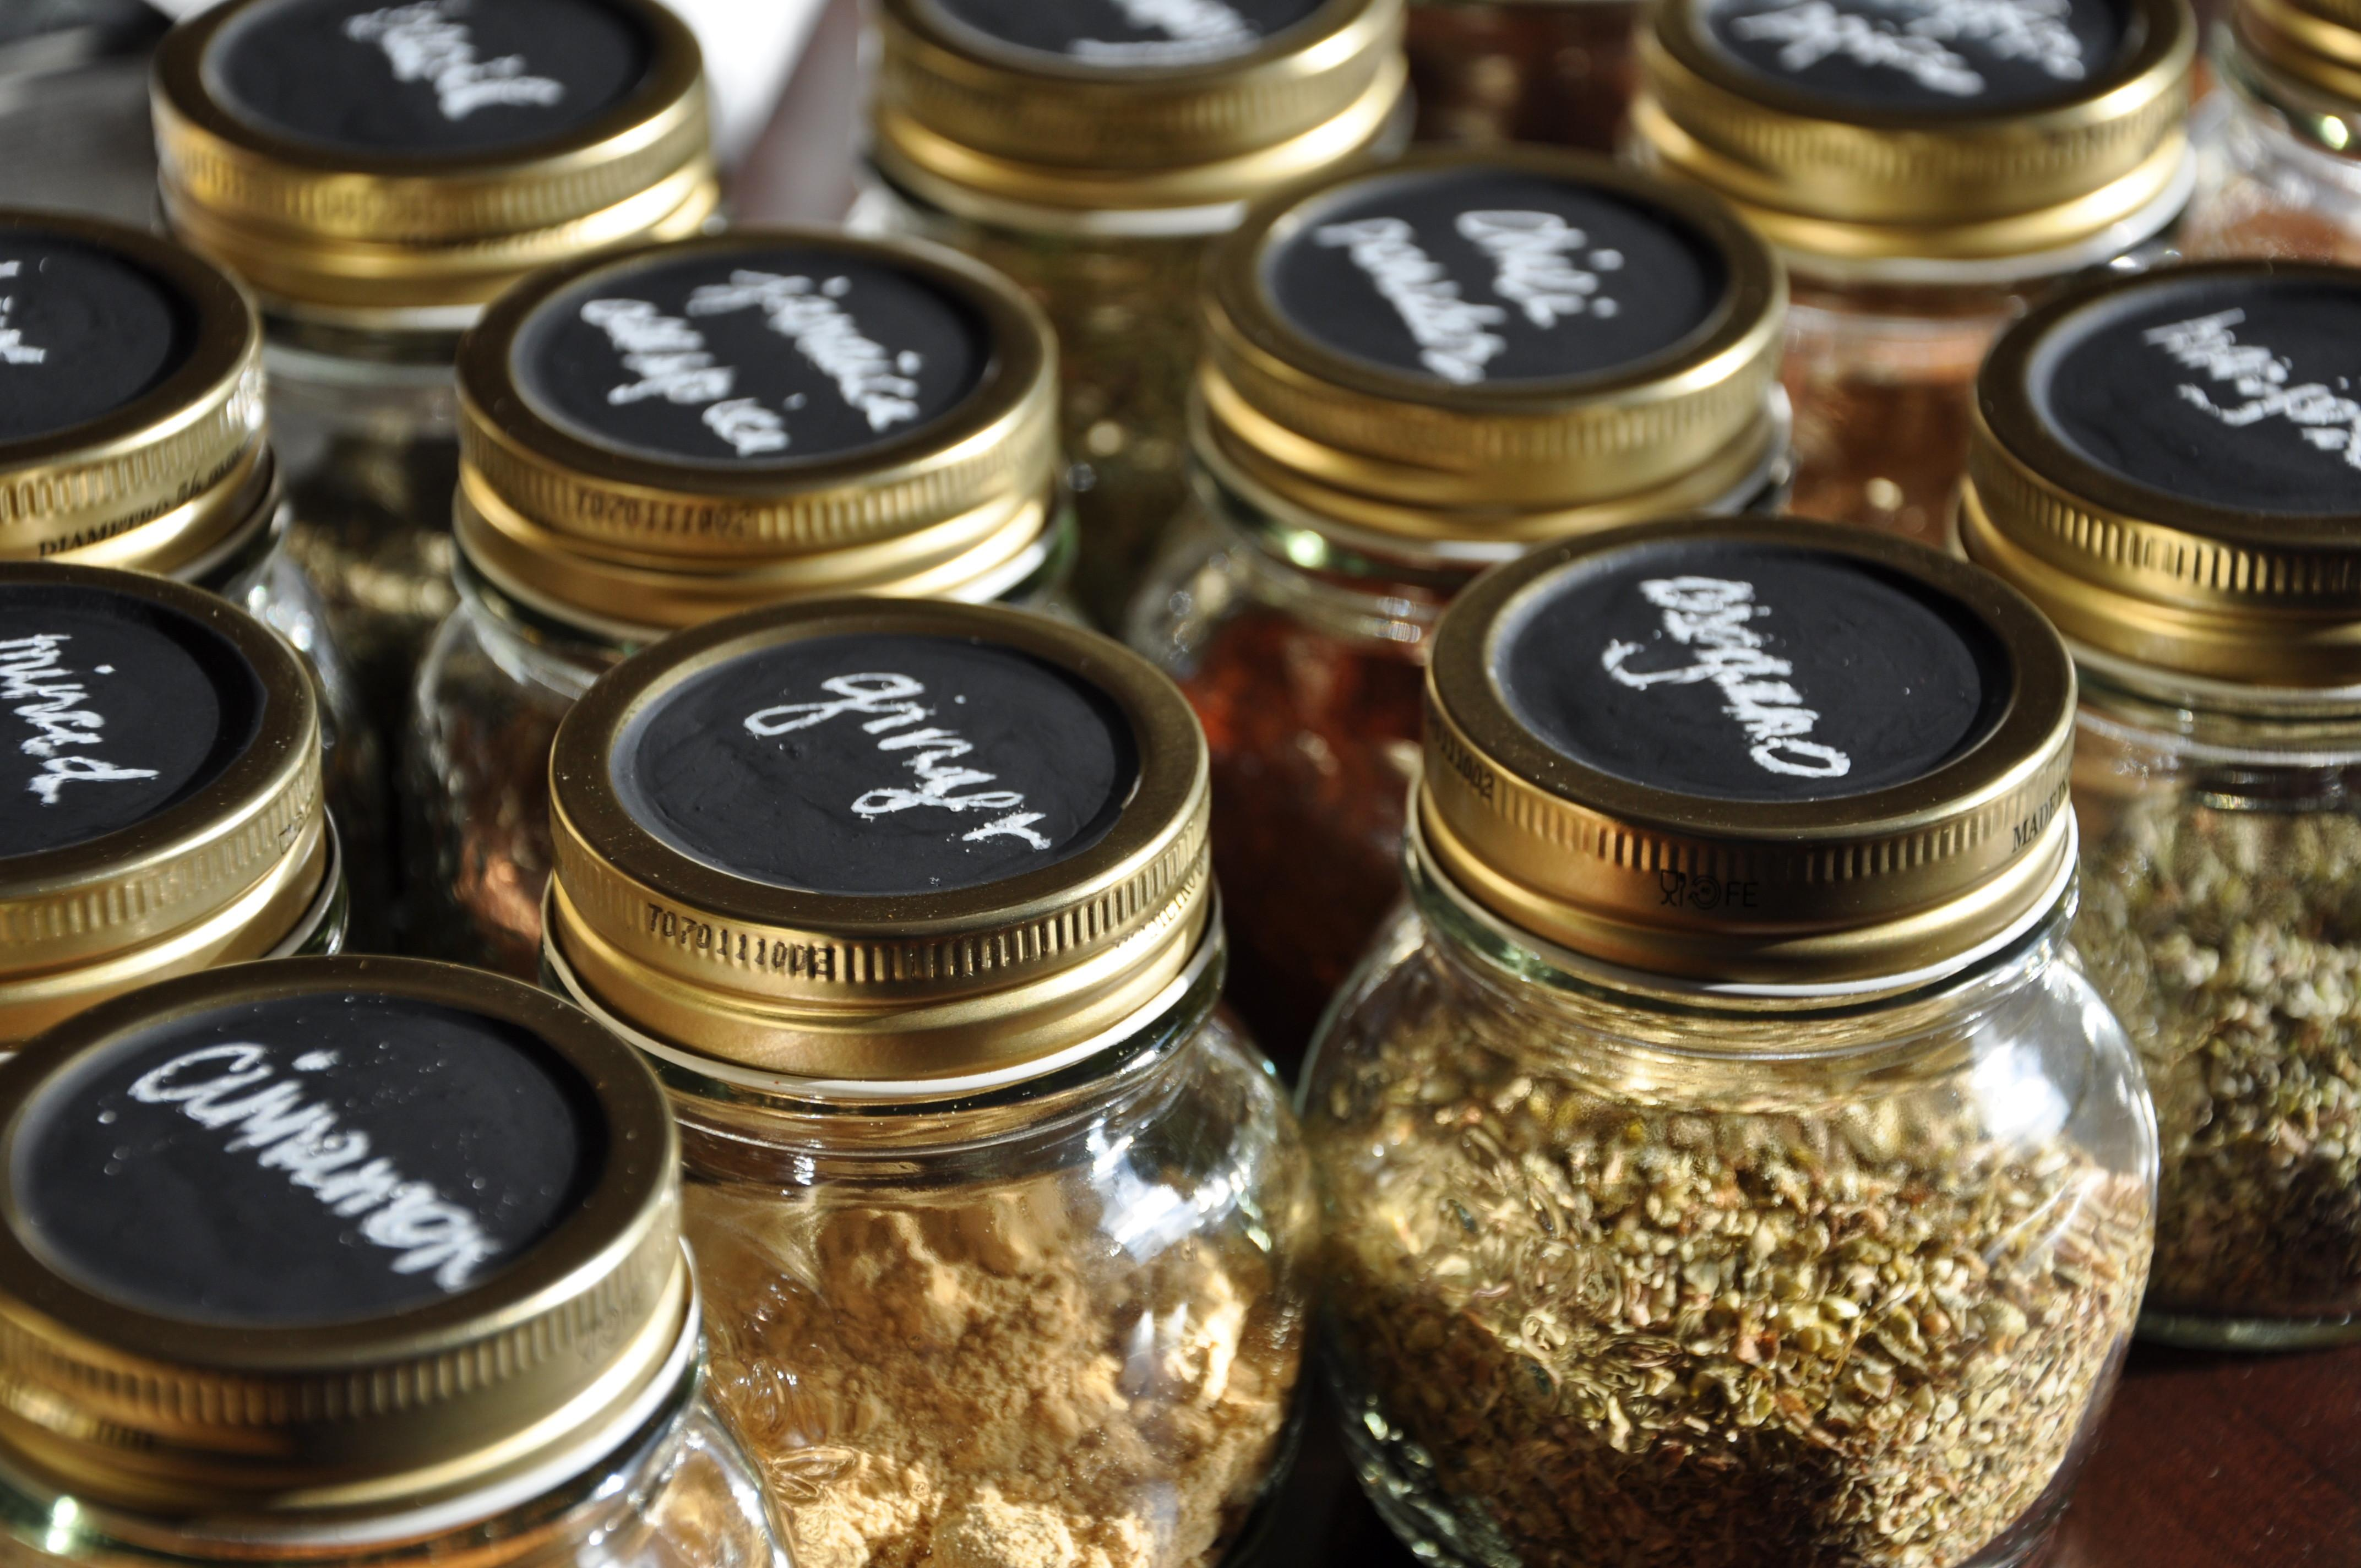 Chalkboard Labeled Spice Jars Shuffling Freckles